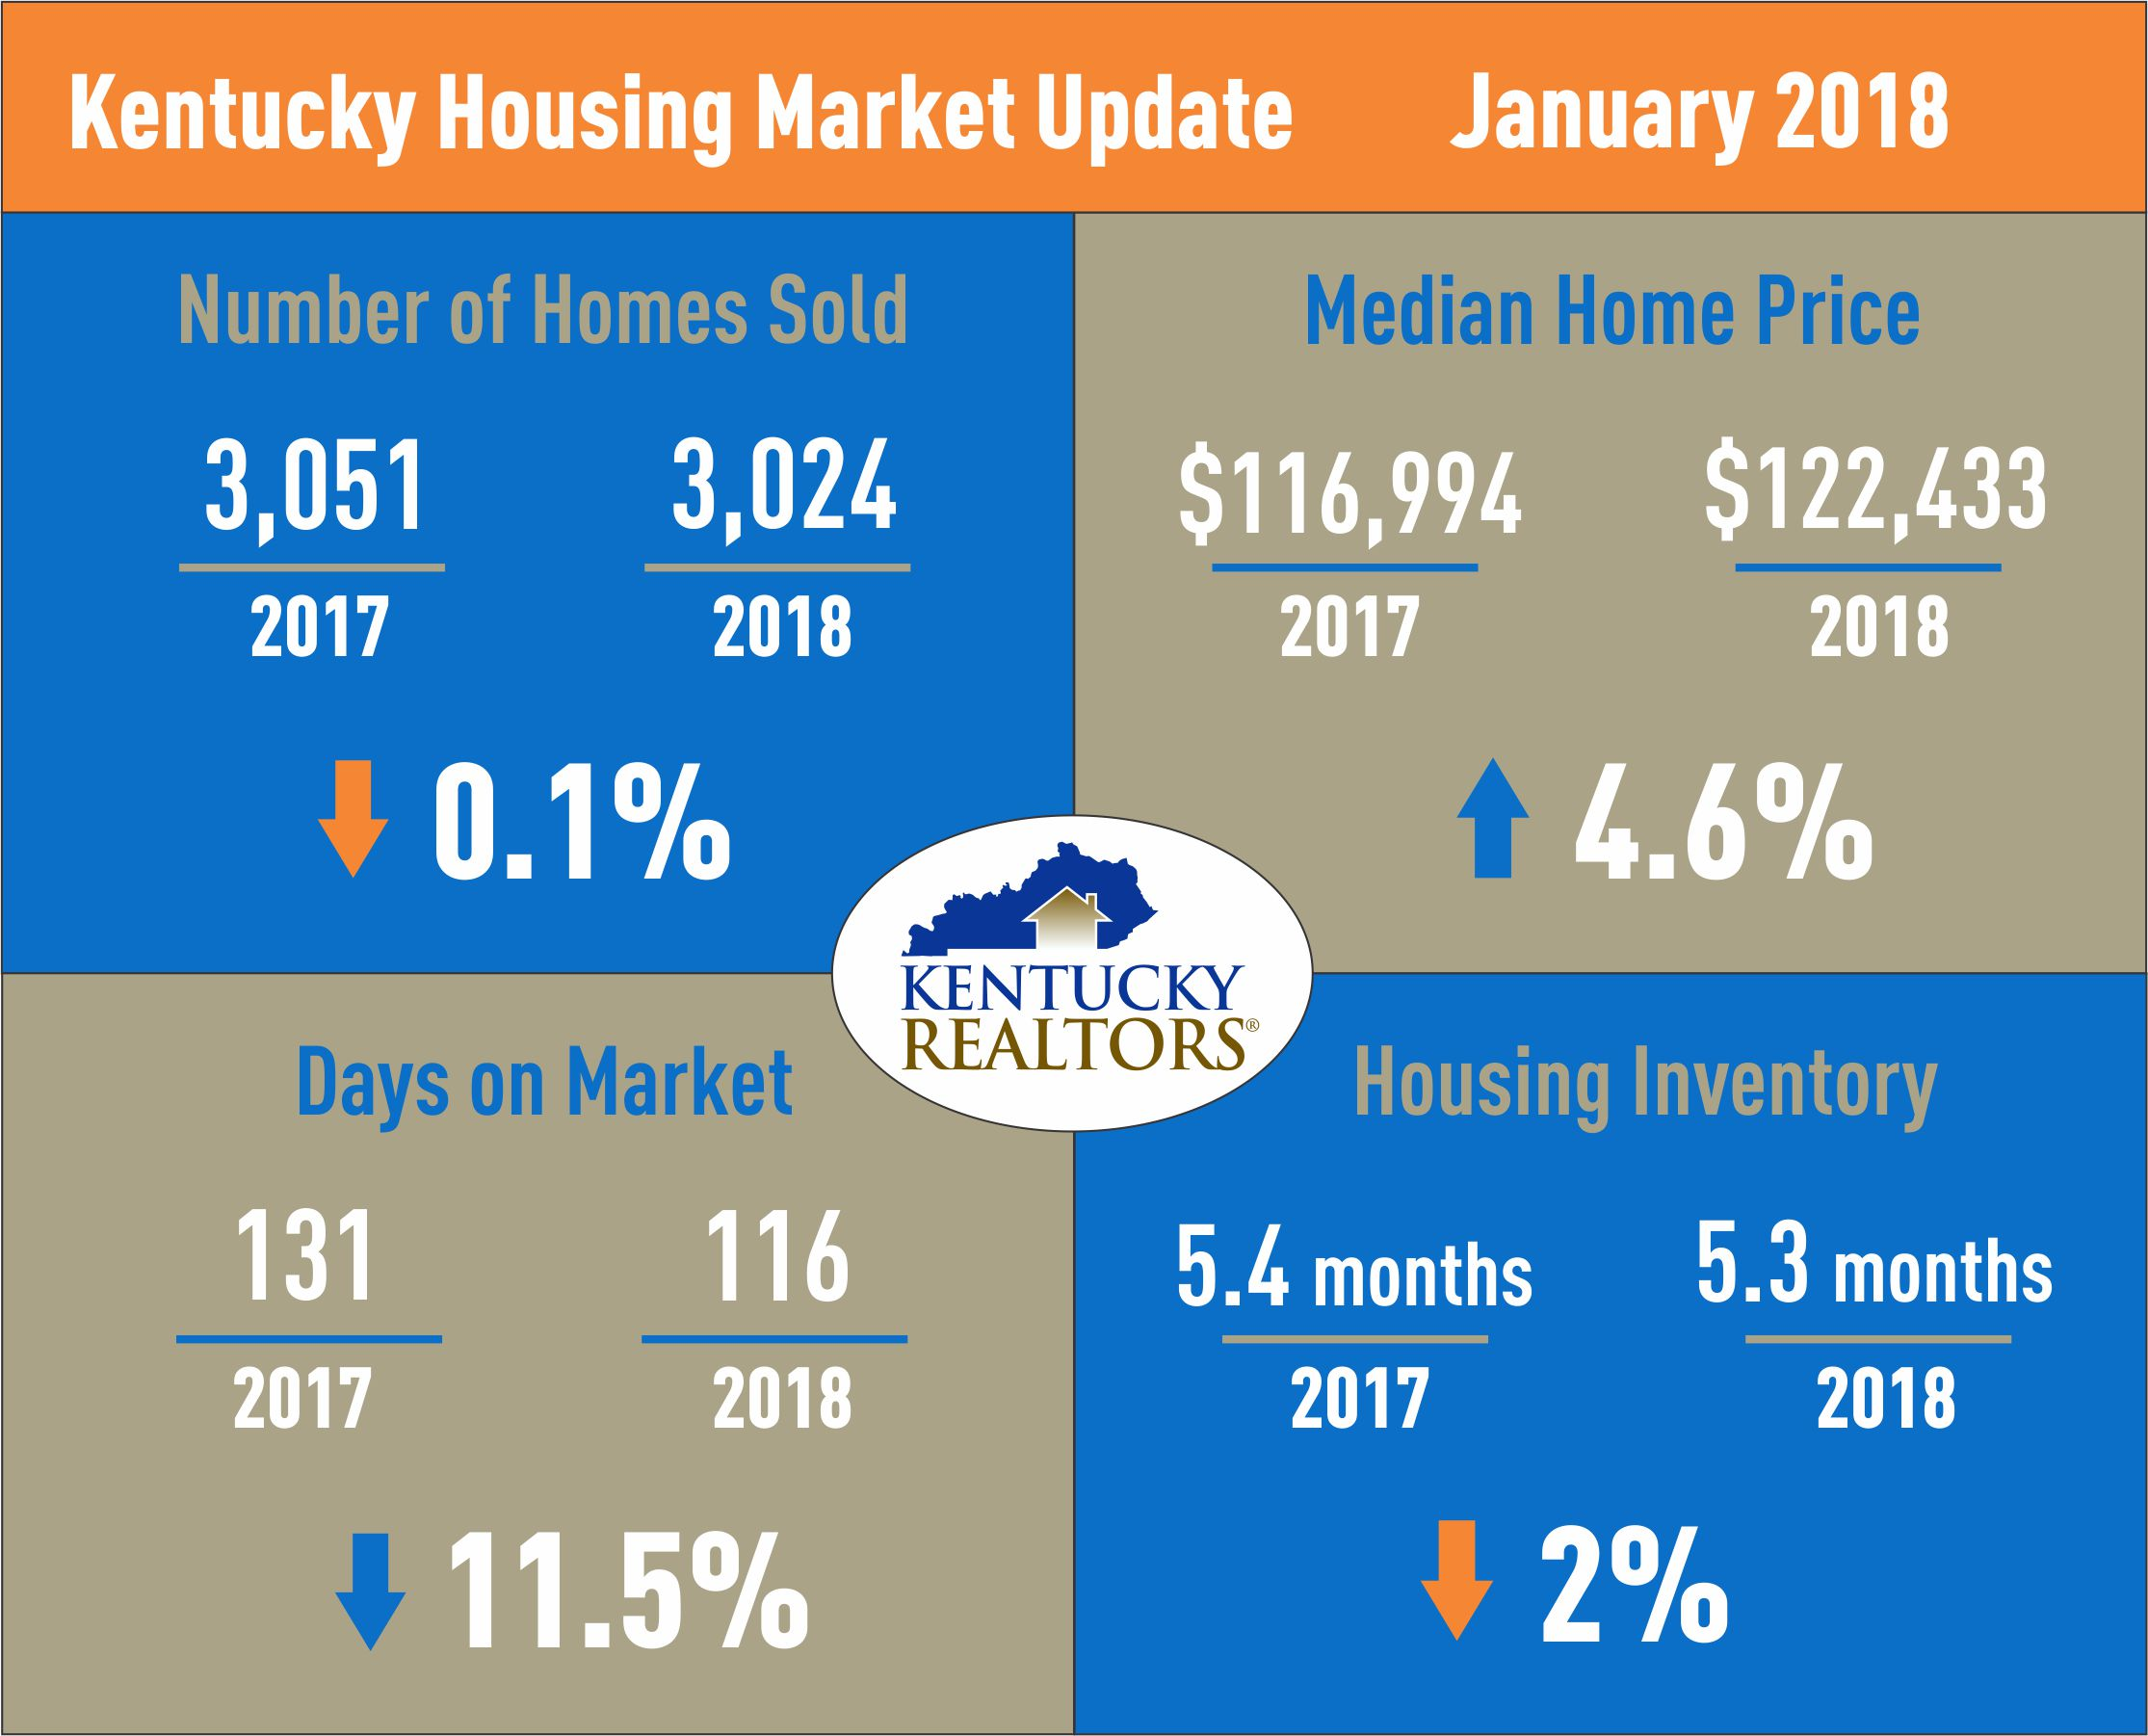 Kentucky Housing Market Update January 2018